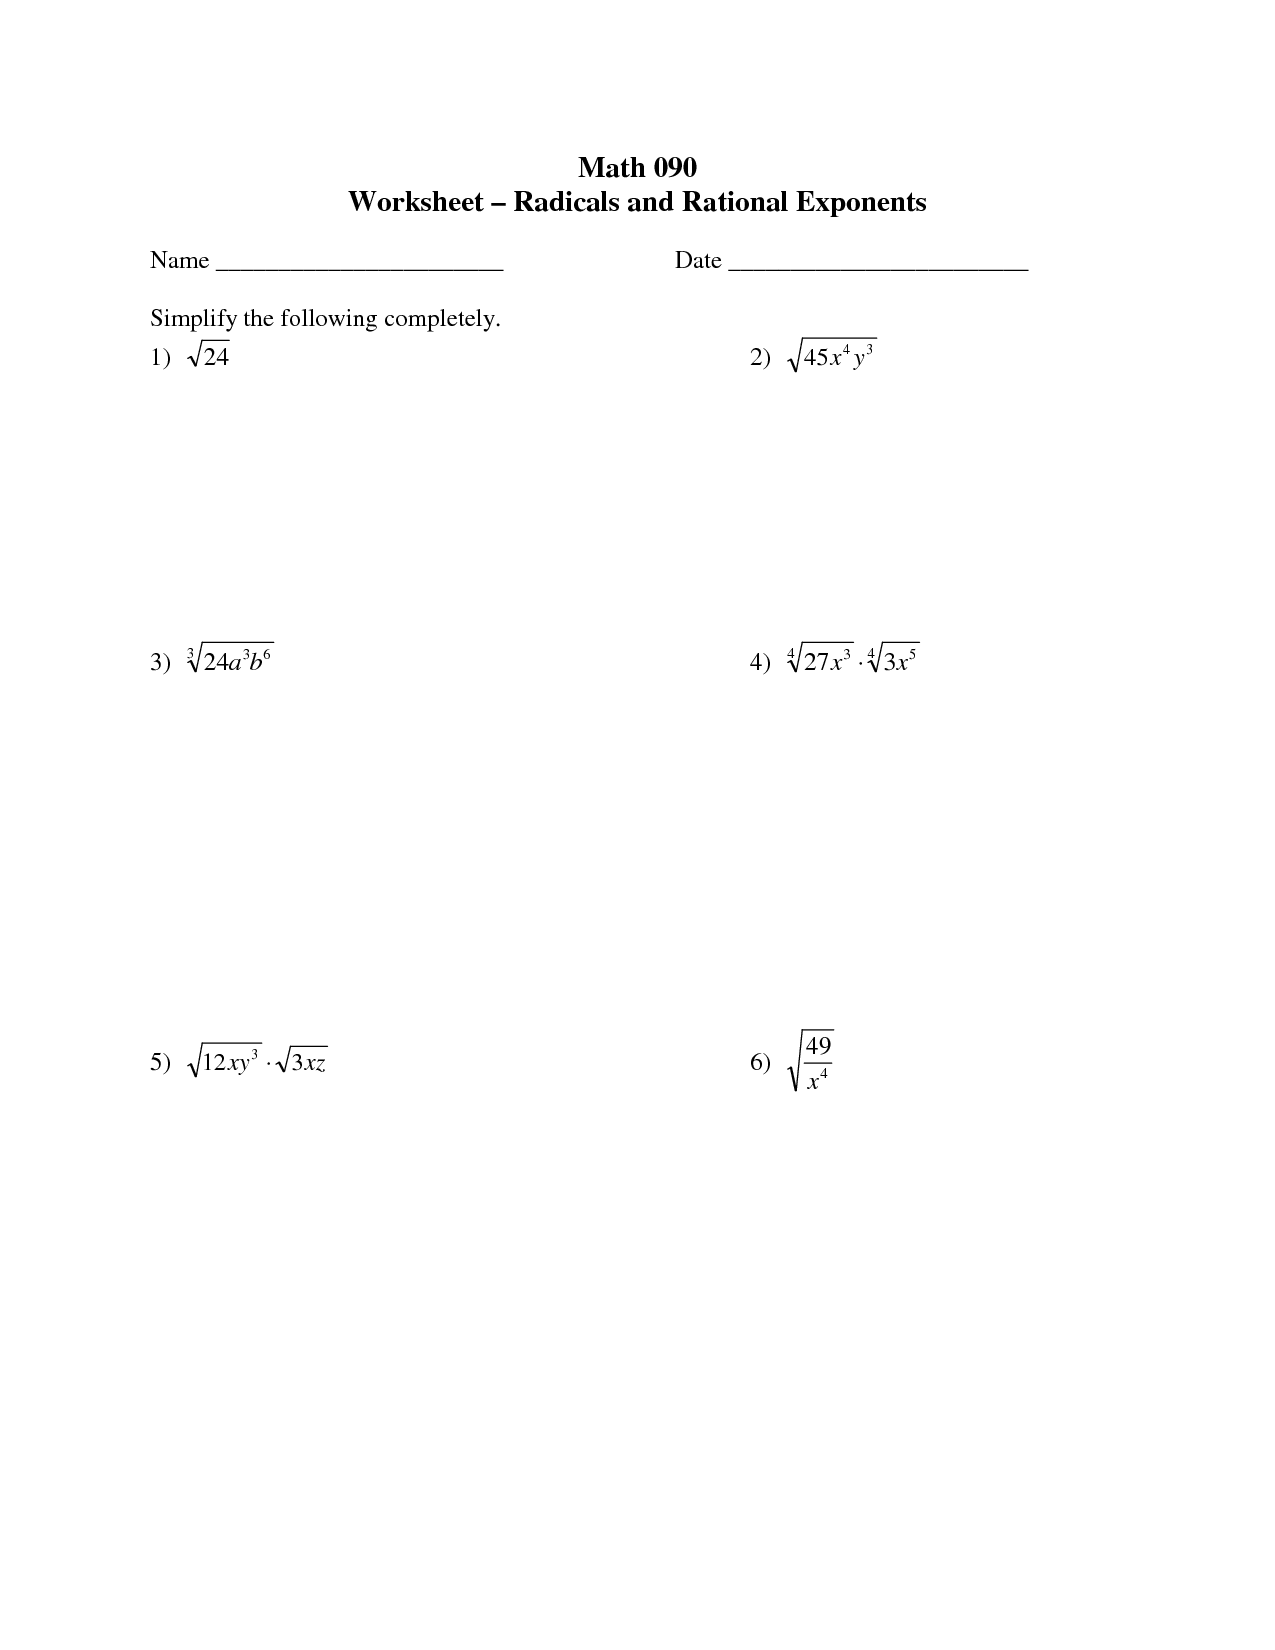 radicals with exponents | Math 090 Worksheet - Radicals and Rational ...